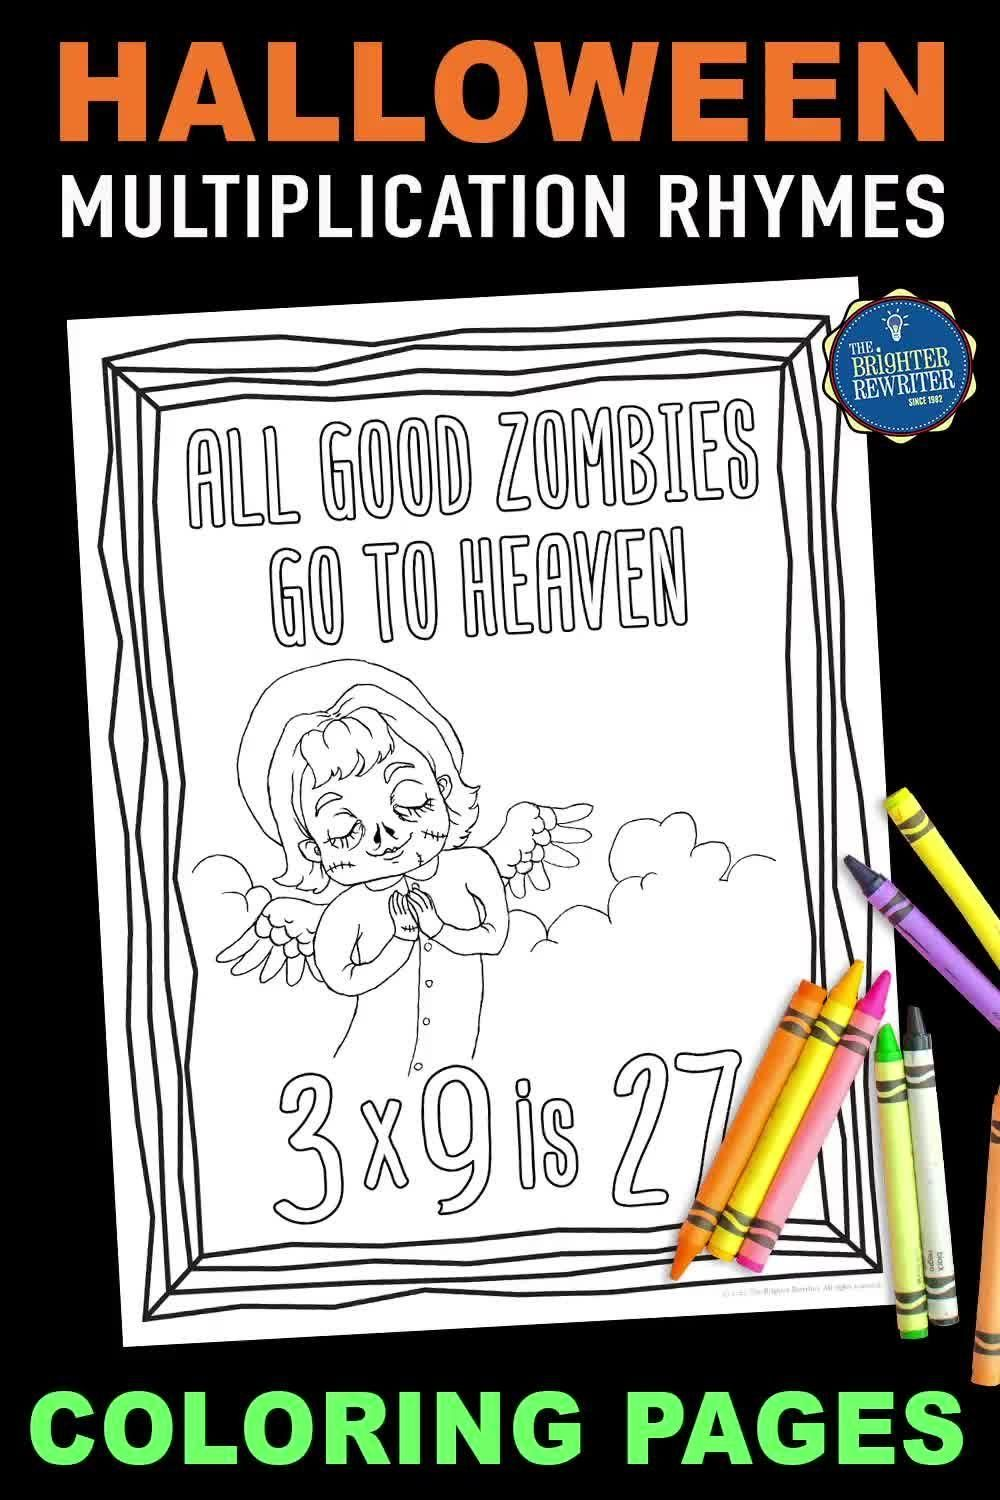 Multiplication Coloring Pages Video Elementary Activities Upper Elementary Activities Small Group Reading [ 1500 x 1000 Pixel ]